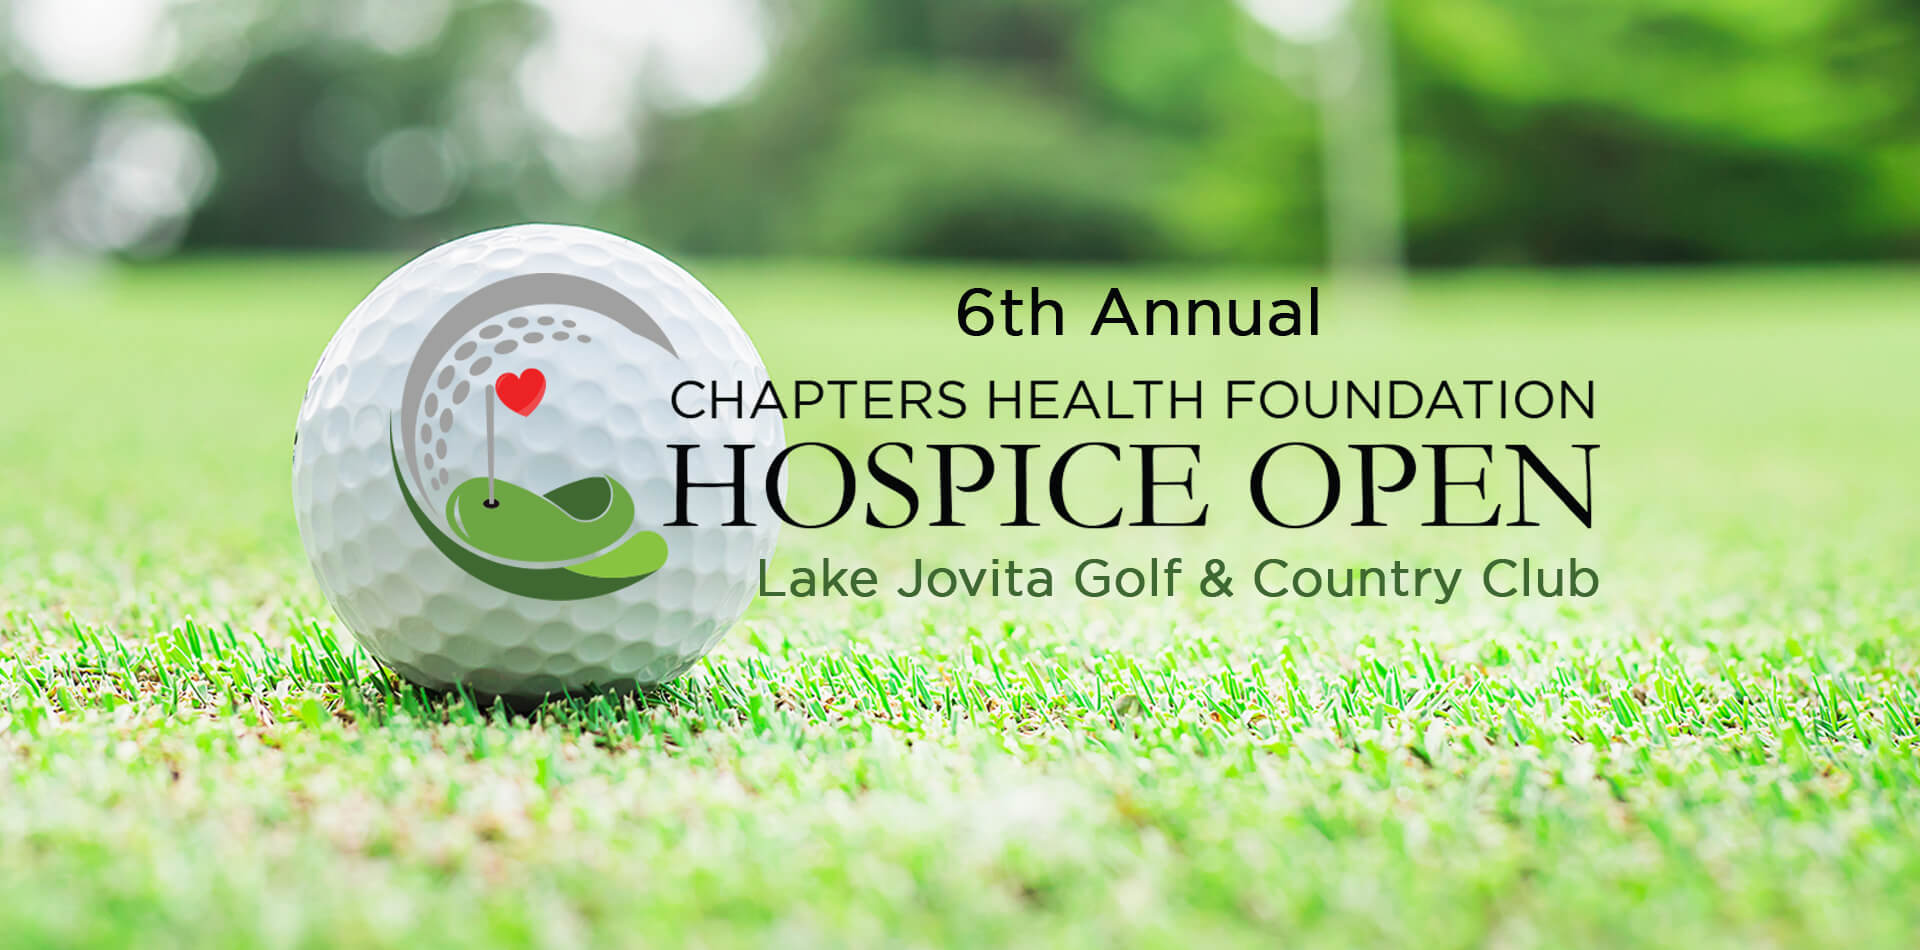 Chapters Health Foundation Hospice Open